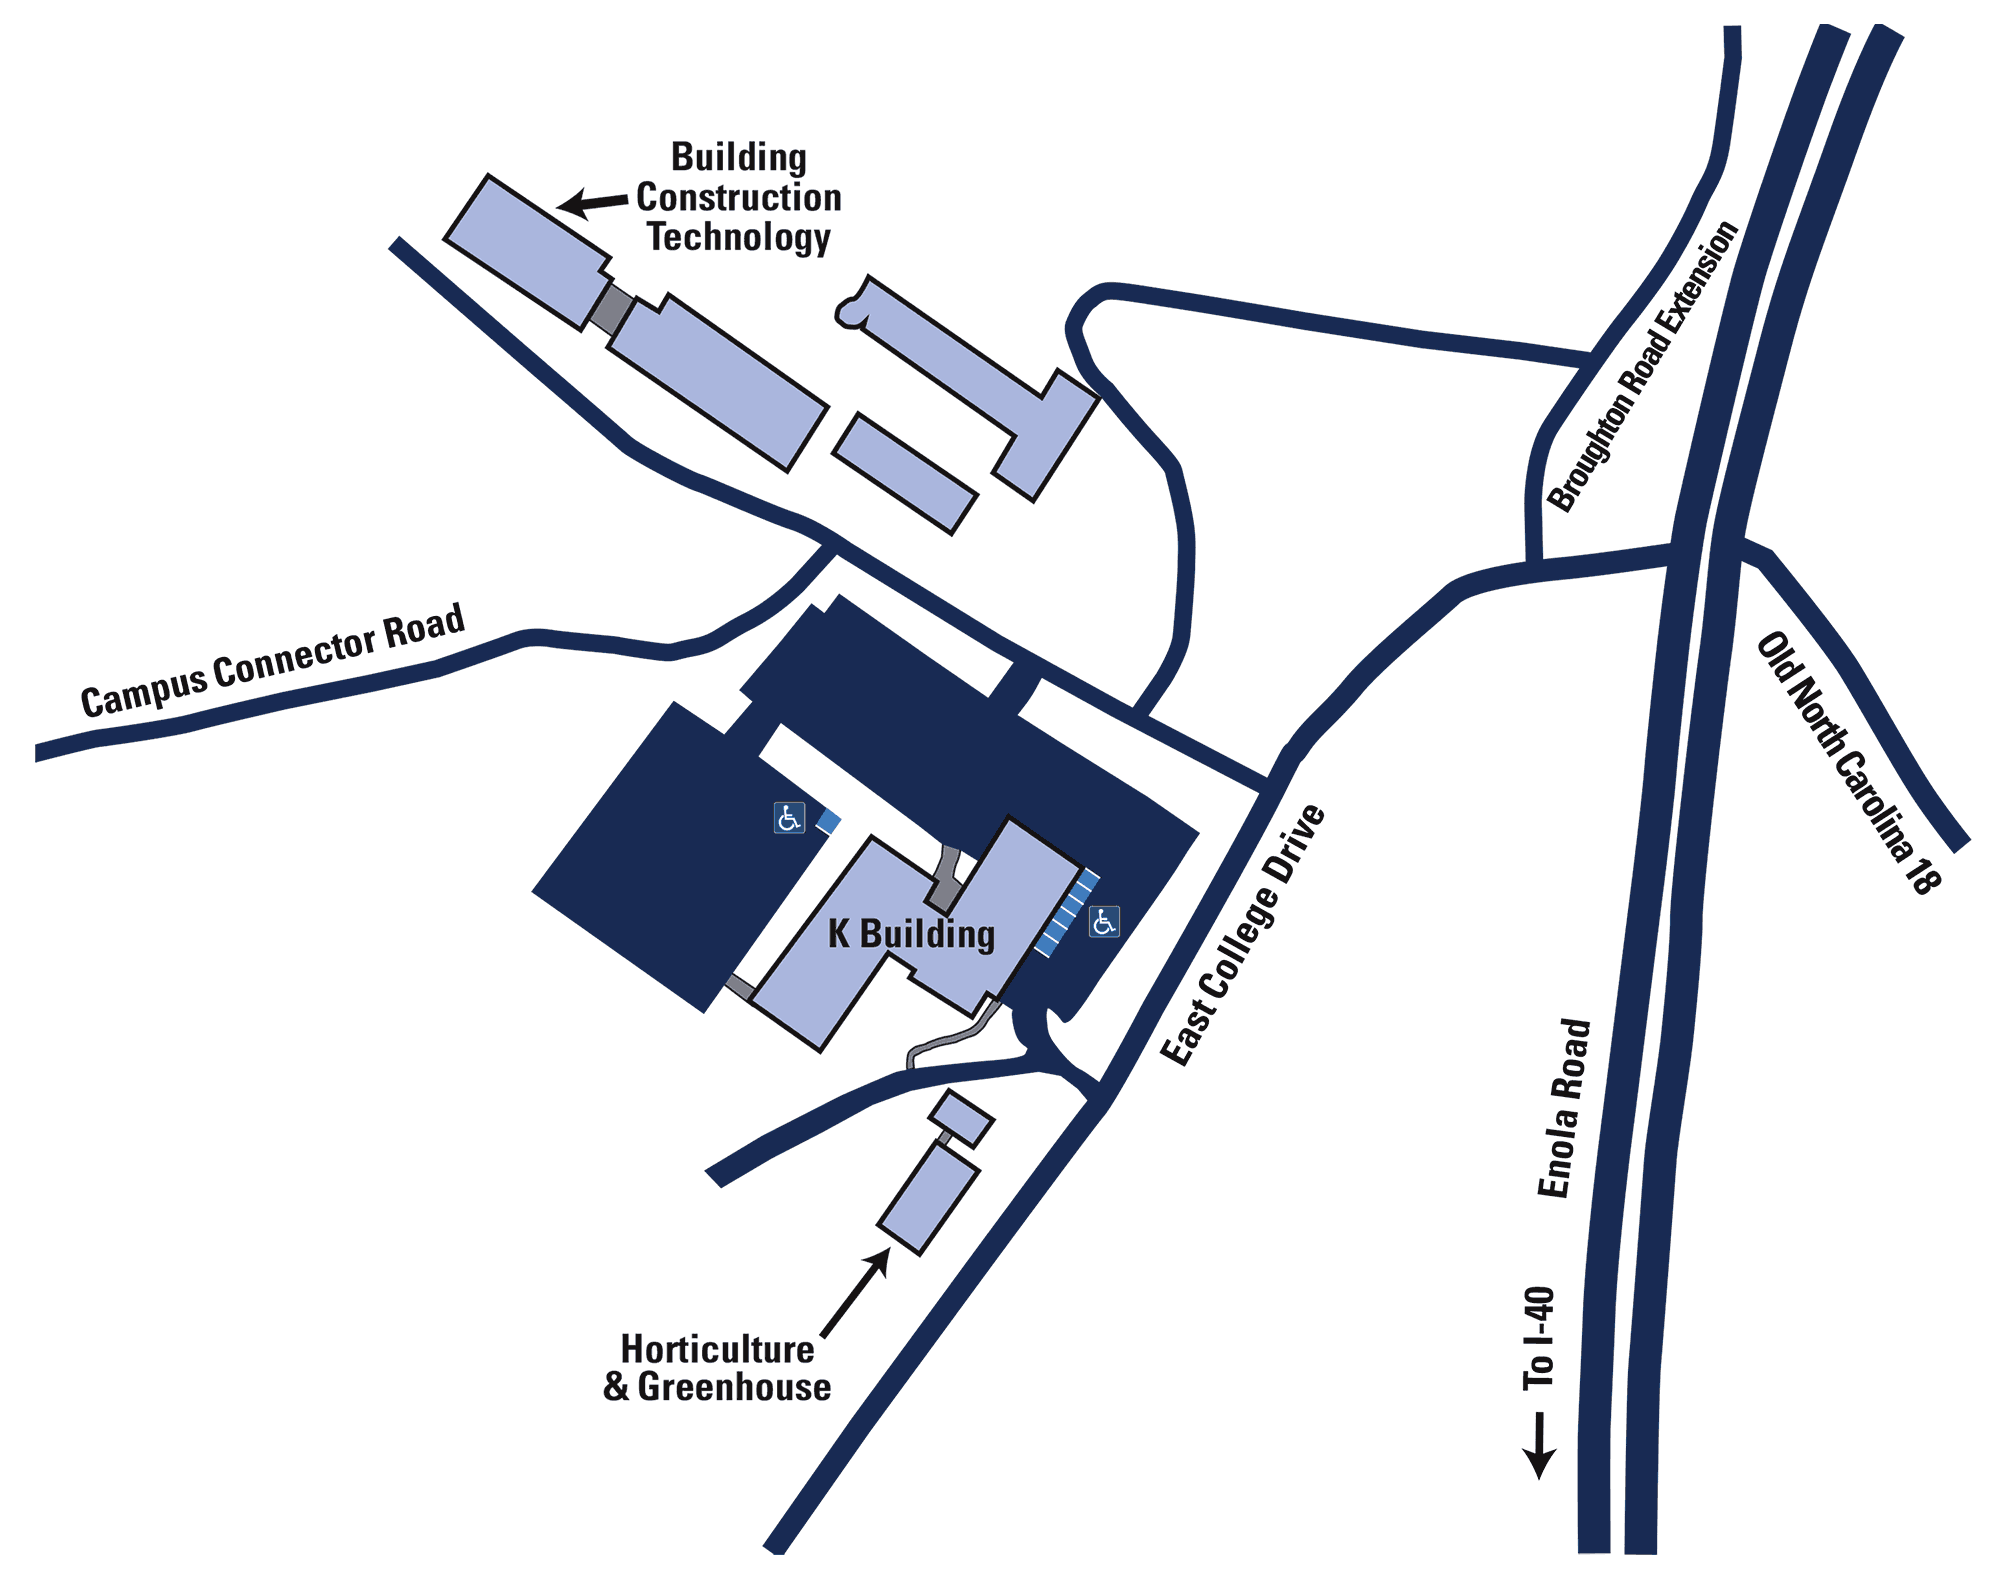 Map of the Jim Richardson Complex with the K Building at the center of the map. The  Building Construction Technology building is at 11 o'clock and the Horticulture program and greenhouse are at 6 o'clock